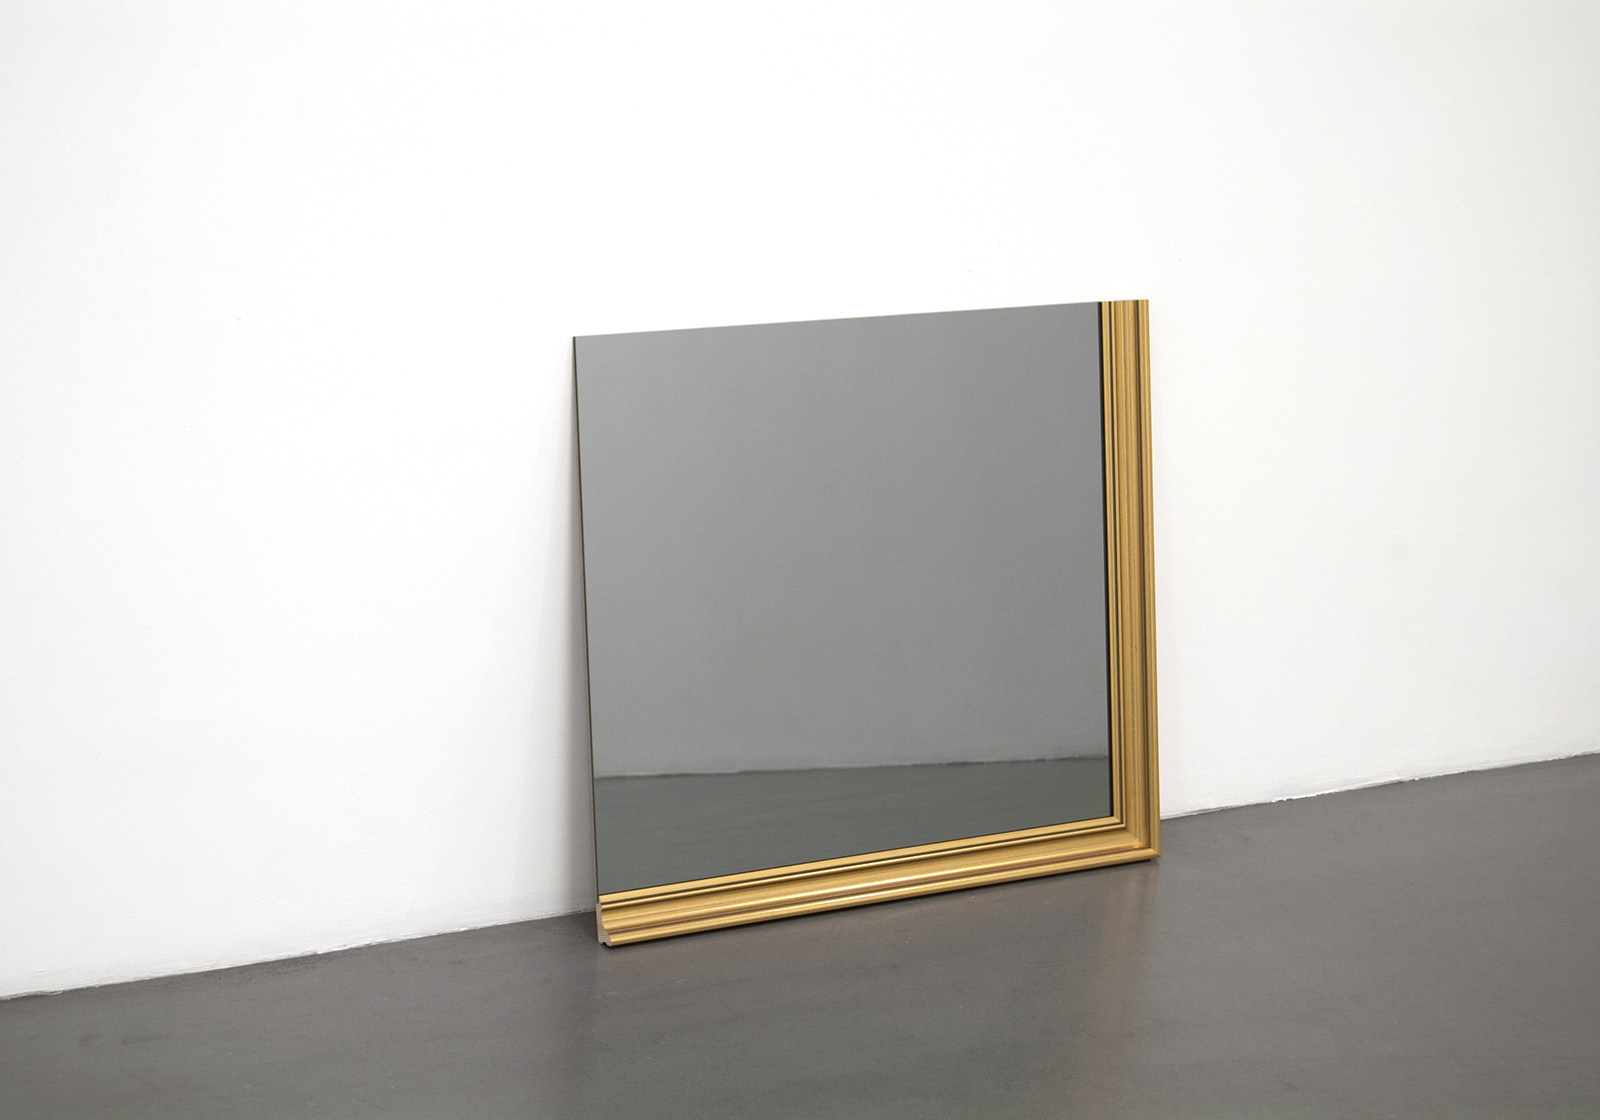 "Karin Ohlin, ""Spegelobjekt XIII"" (Mirror object), 2013, gold frame, gray mirror glass 68 x 76 x 3 cm."